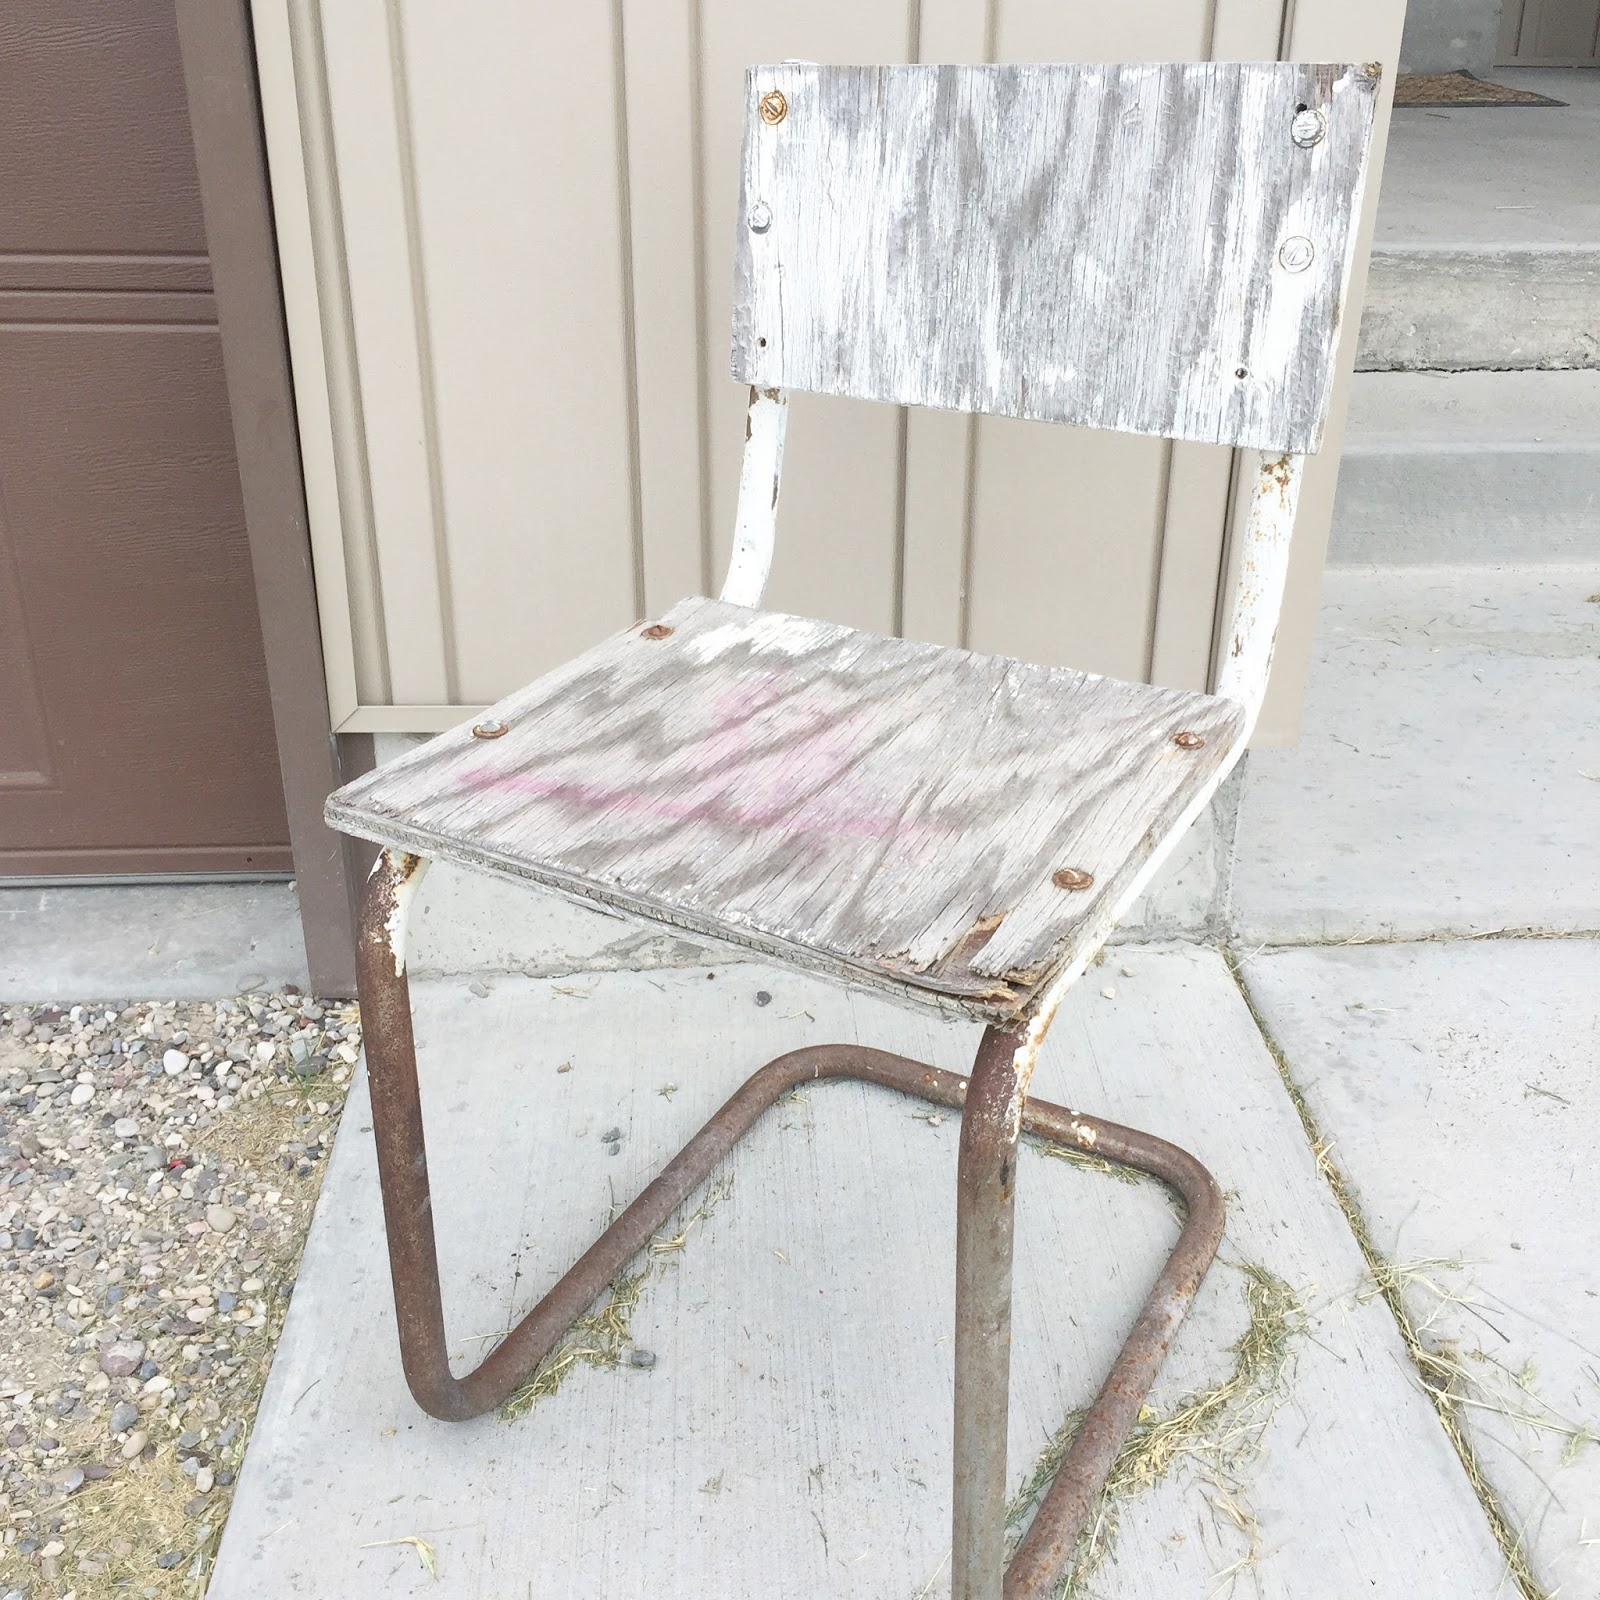 Ugly Chair The Ultimate Roadside Rescue Ugly Chair A Vision To